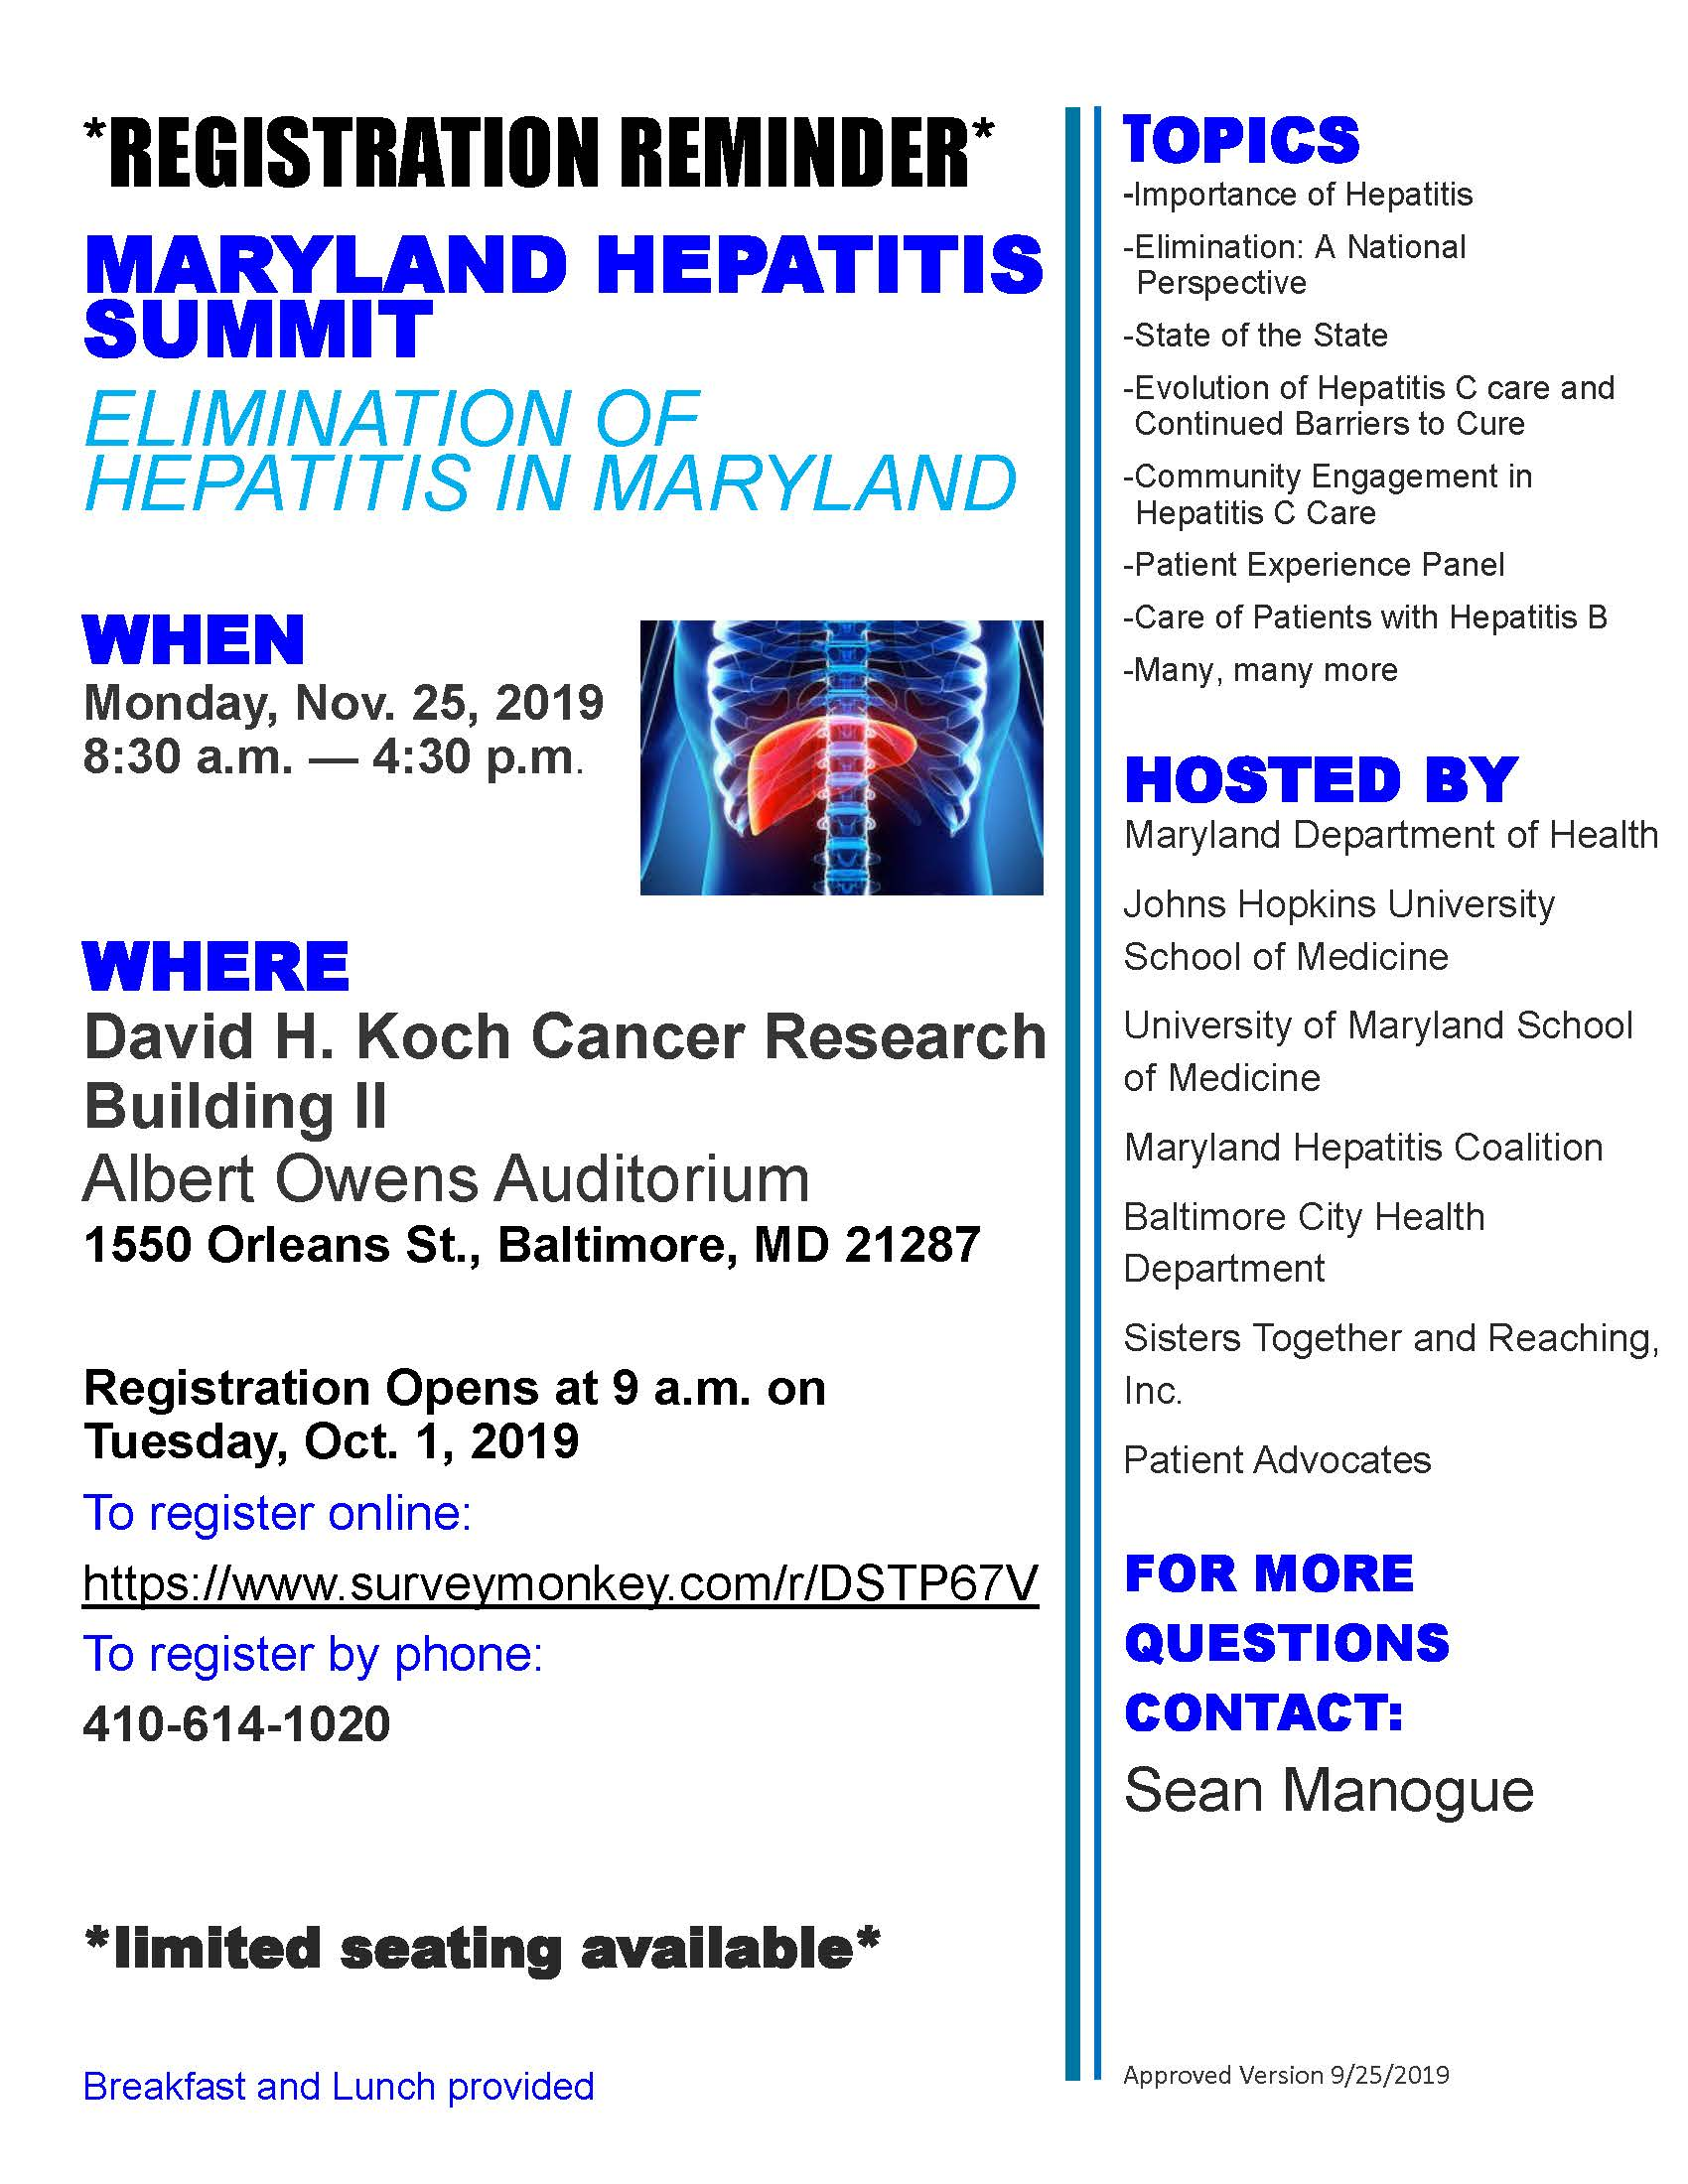 Hepatitis summit flyer updated-direct registration